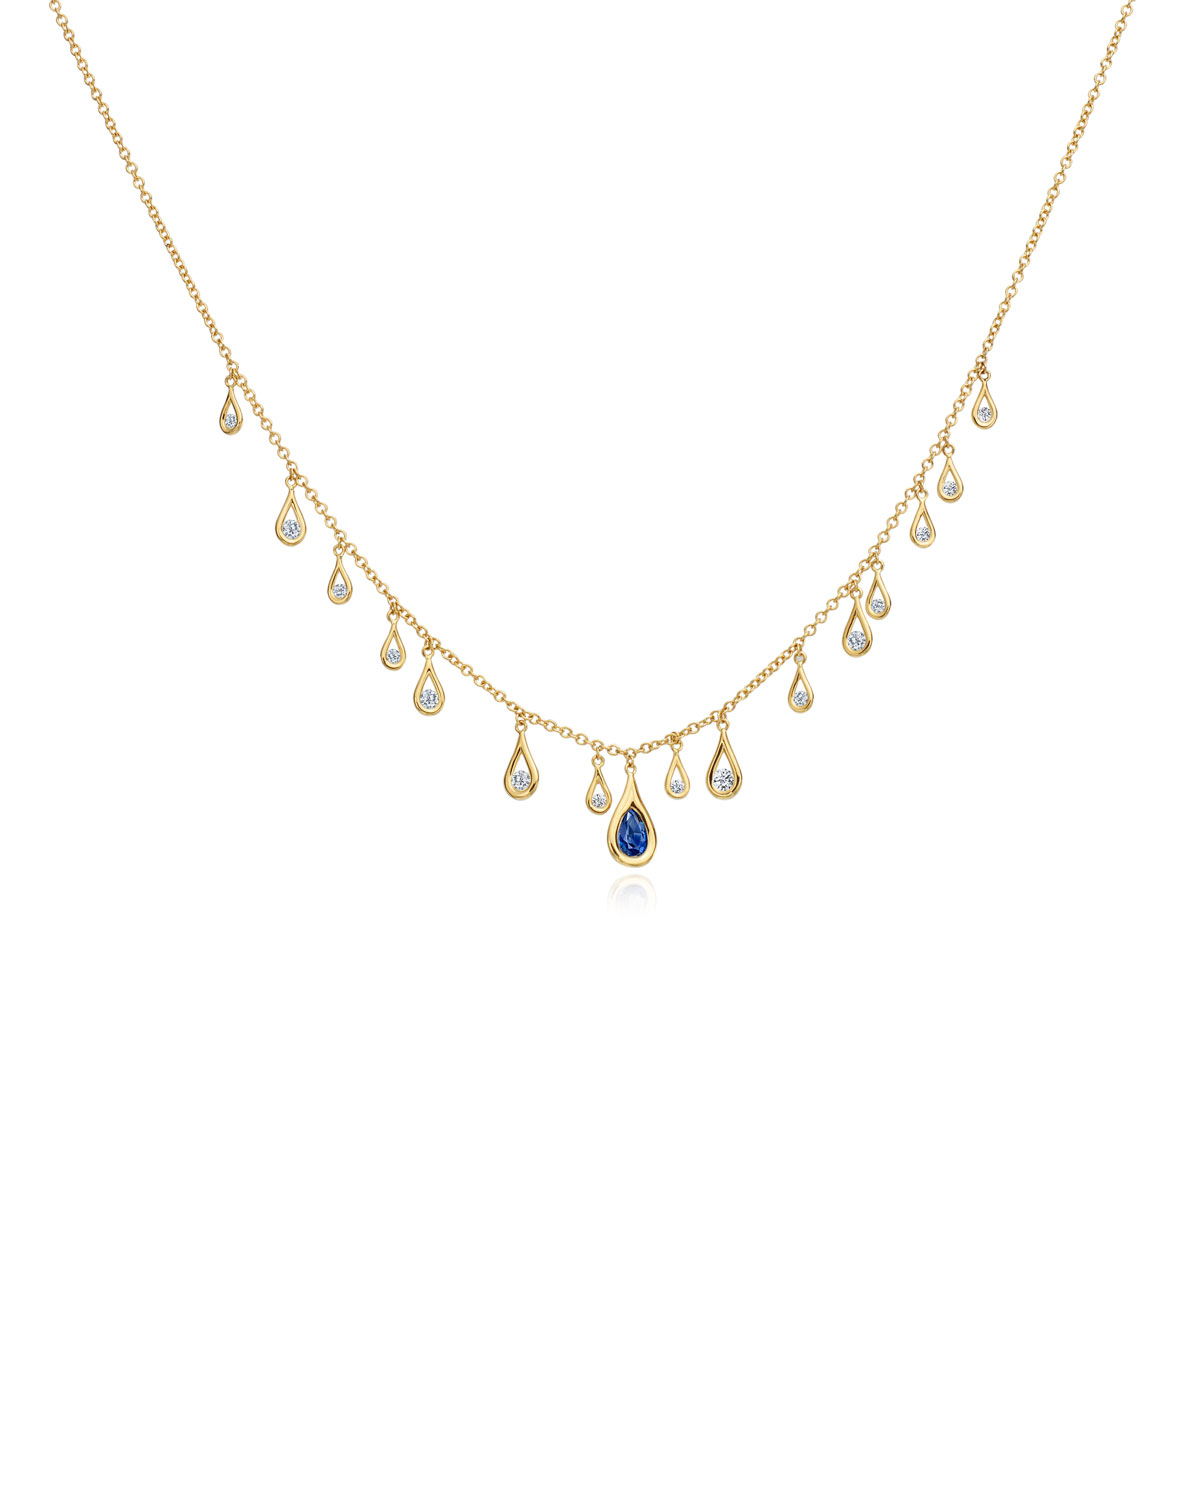 MARIA CANALE 18K Gold, Diamond & Sapphire Drop Necklace